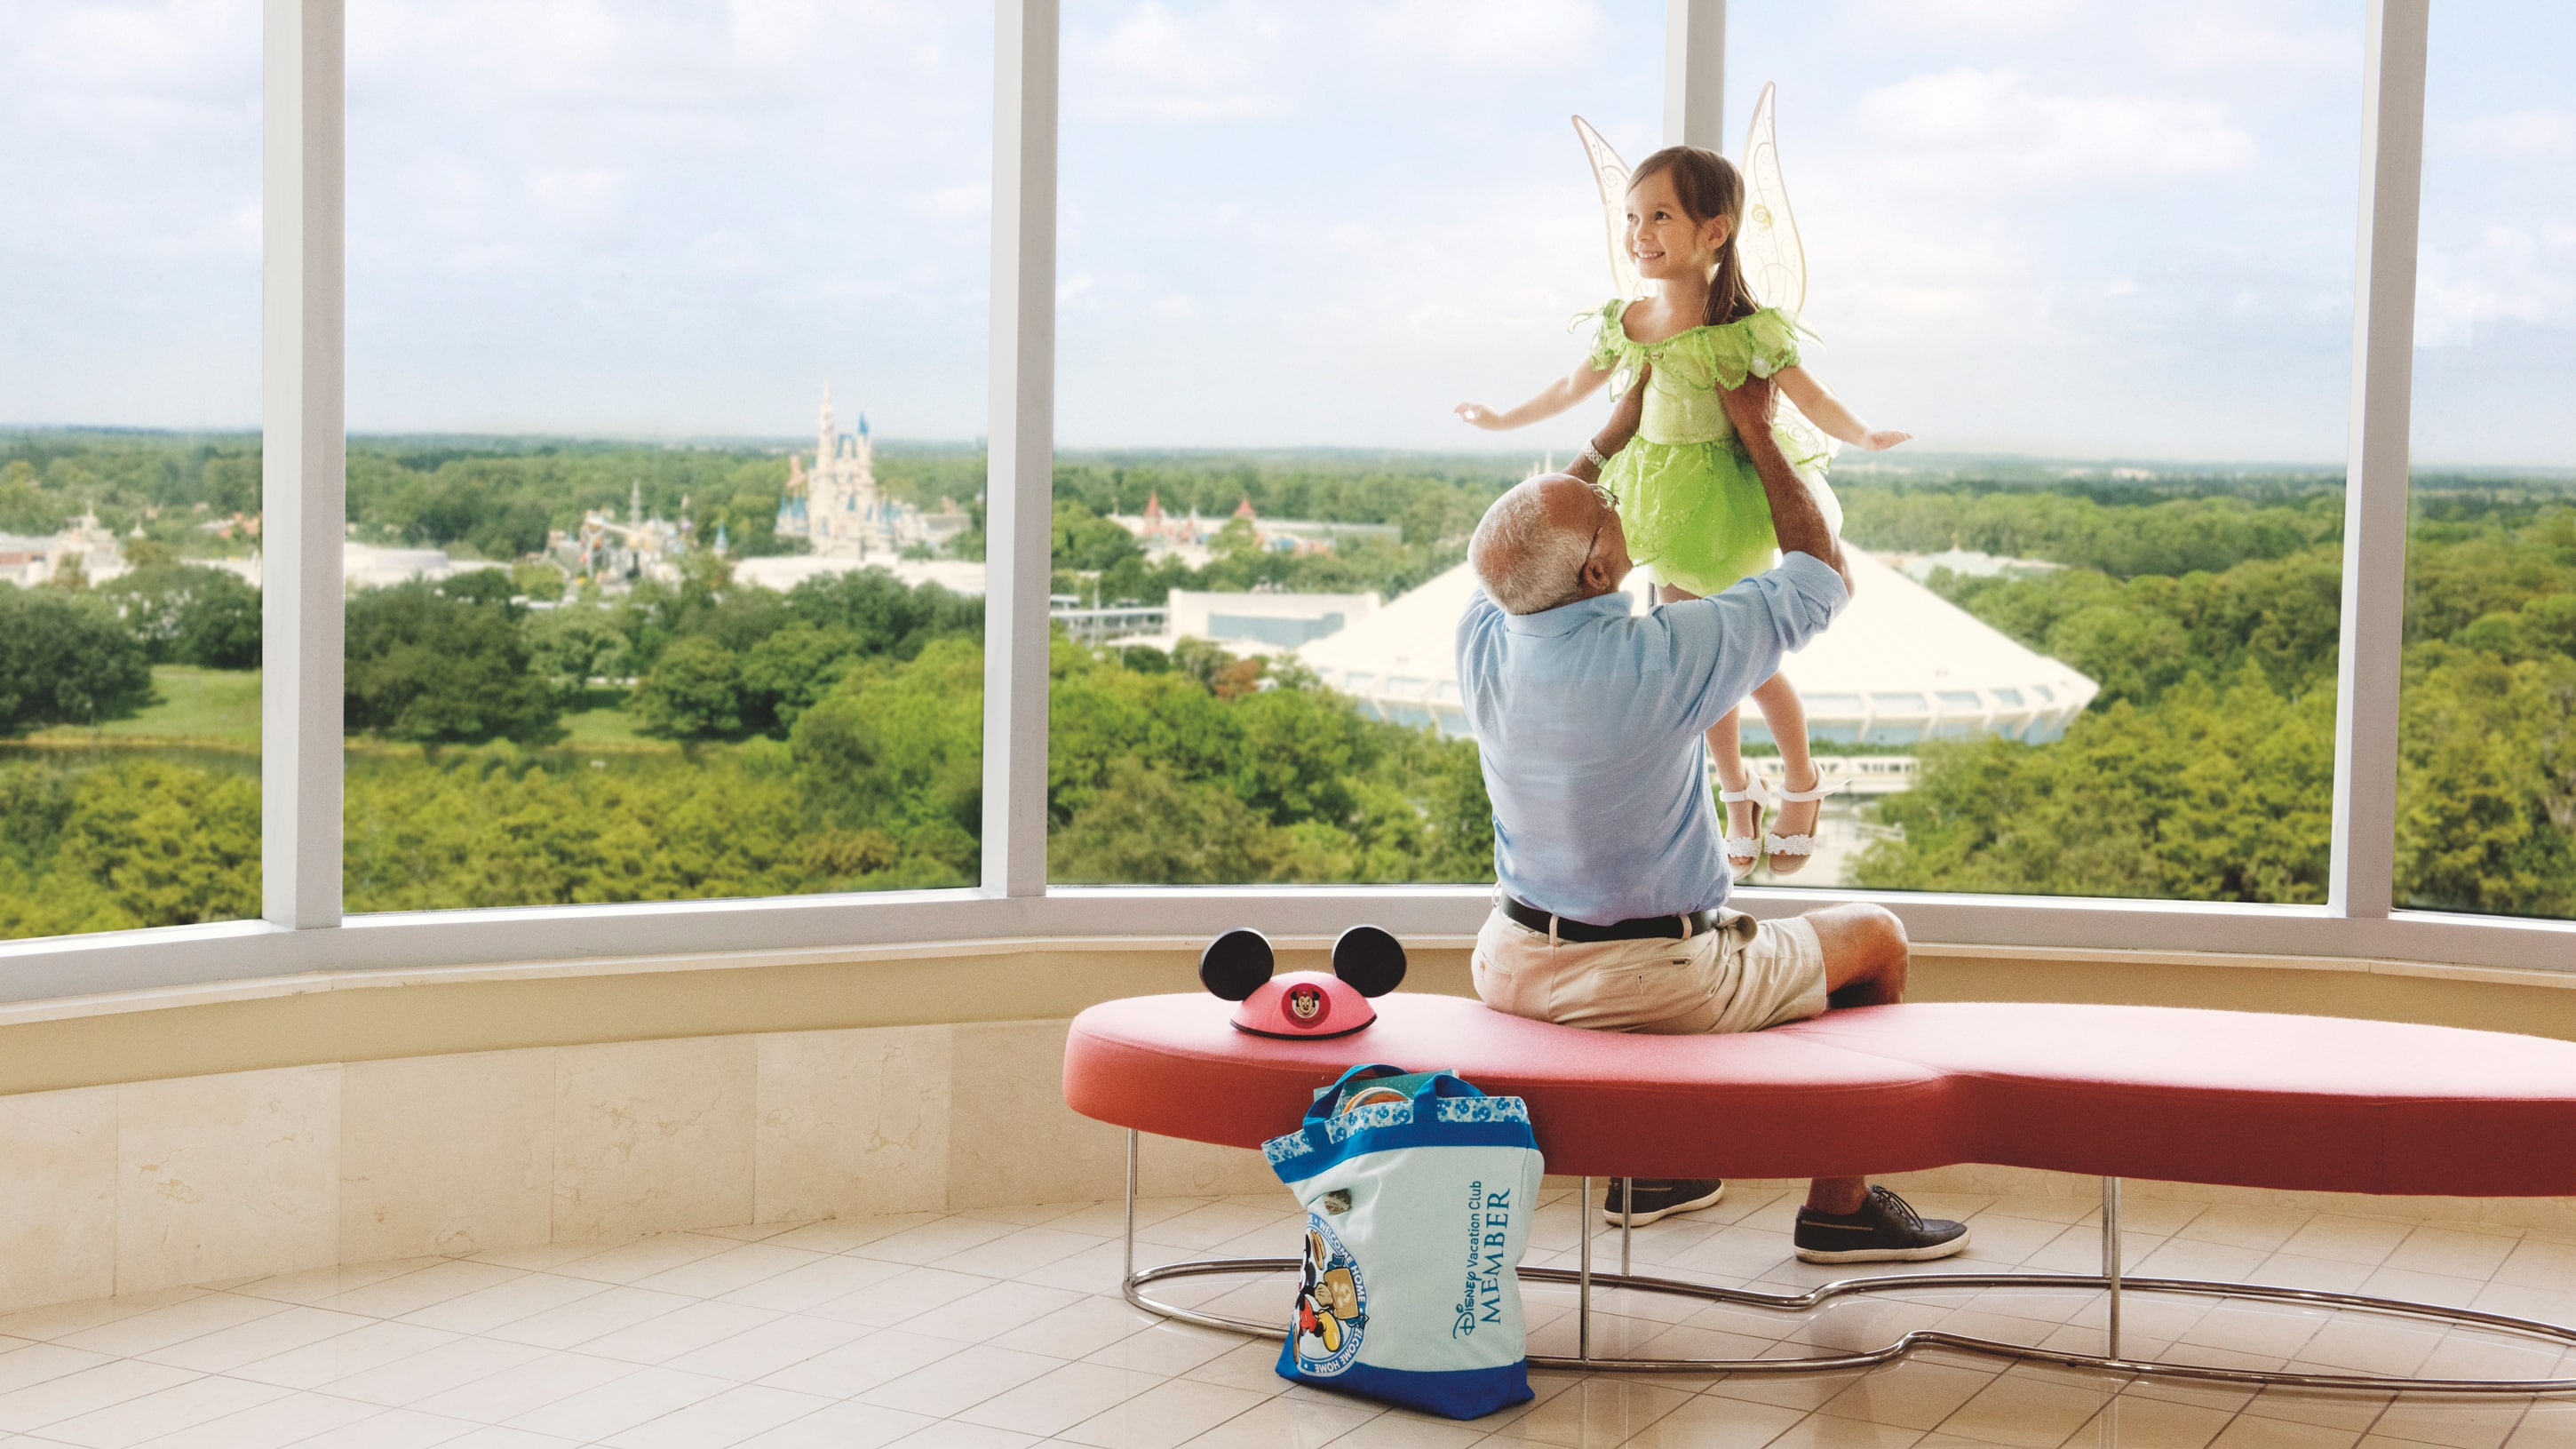 A man lifts his granddaughter near a window facing Cinderella Castle